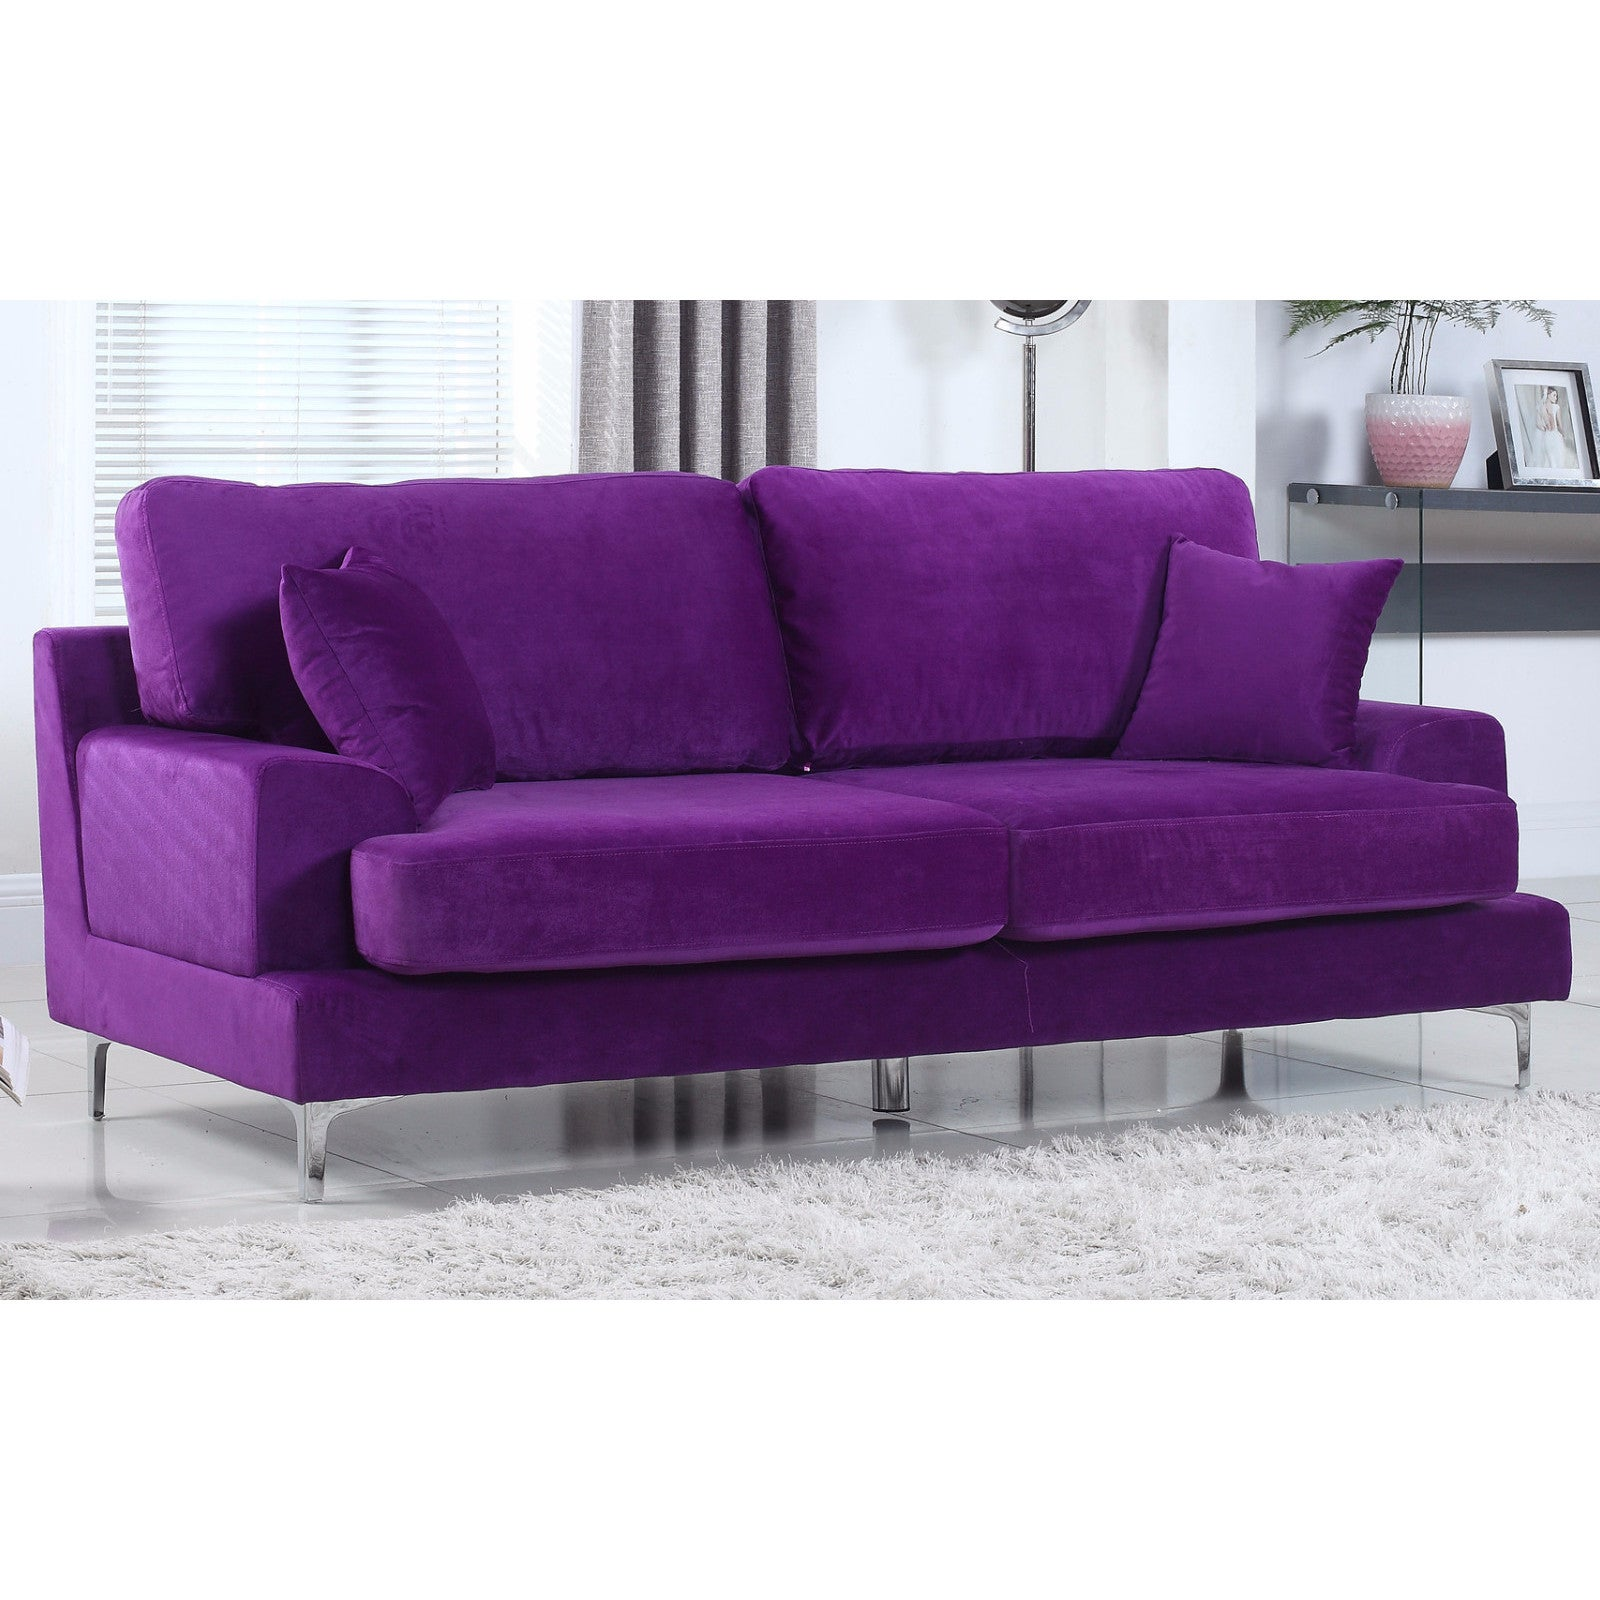 Purple Sofas Couches Online At Our Best Living Room Furniture Deals